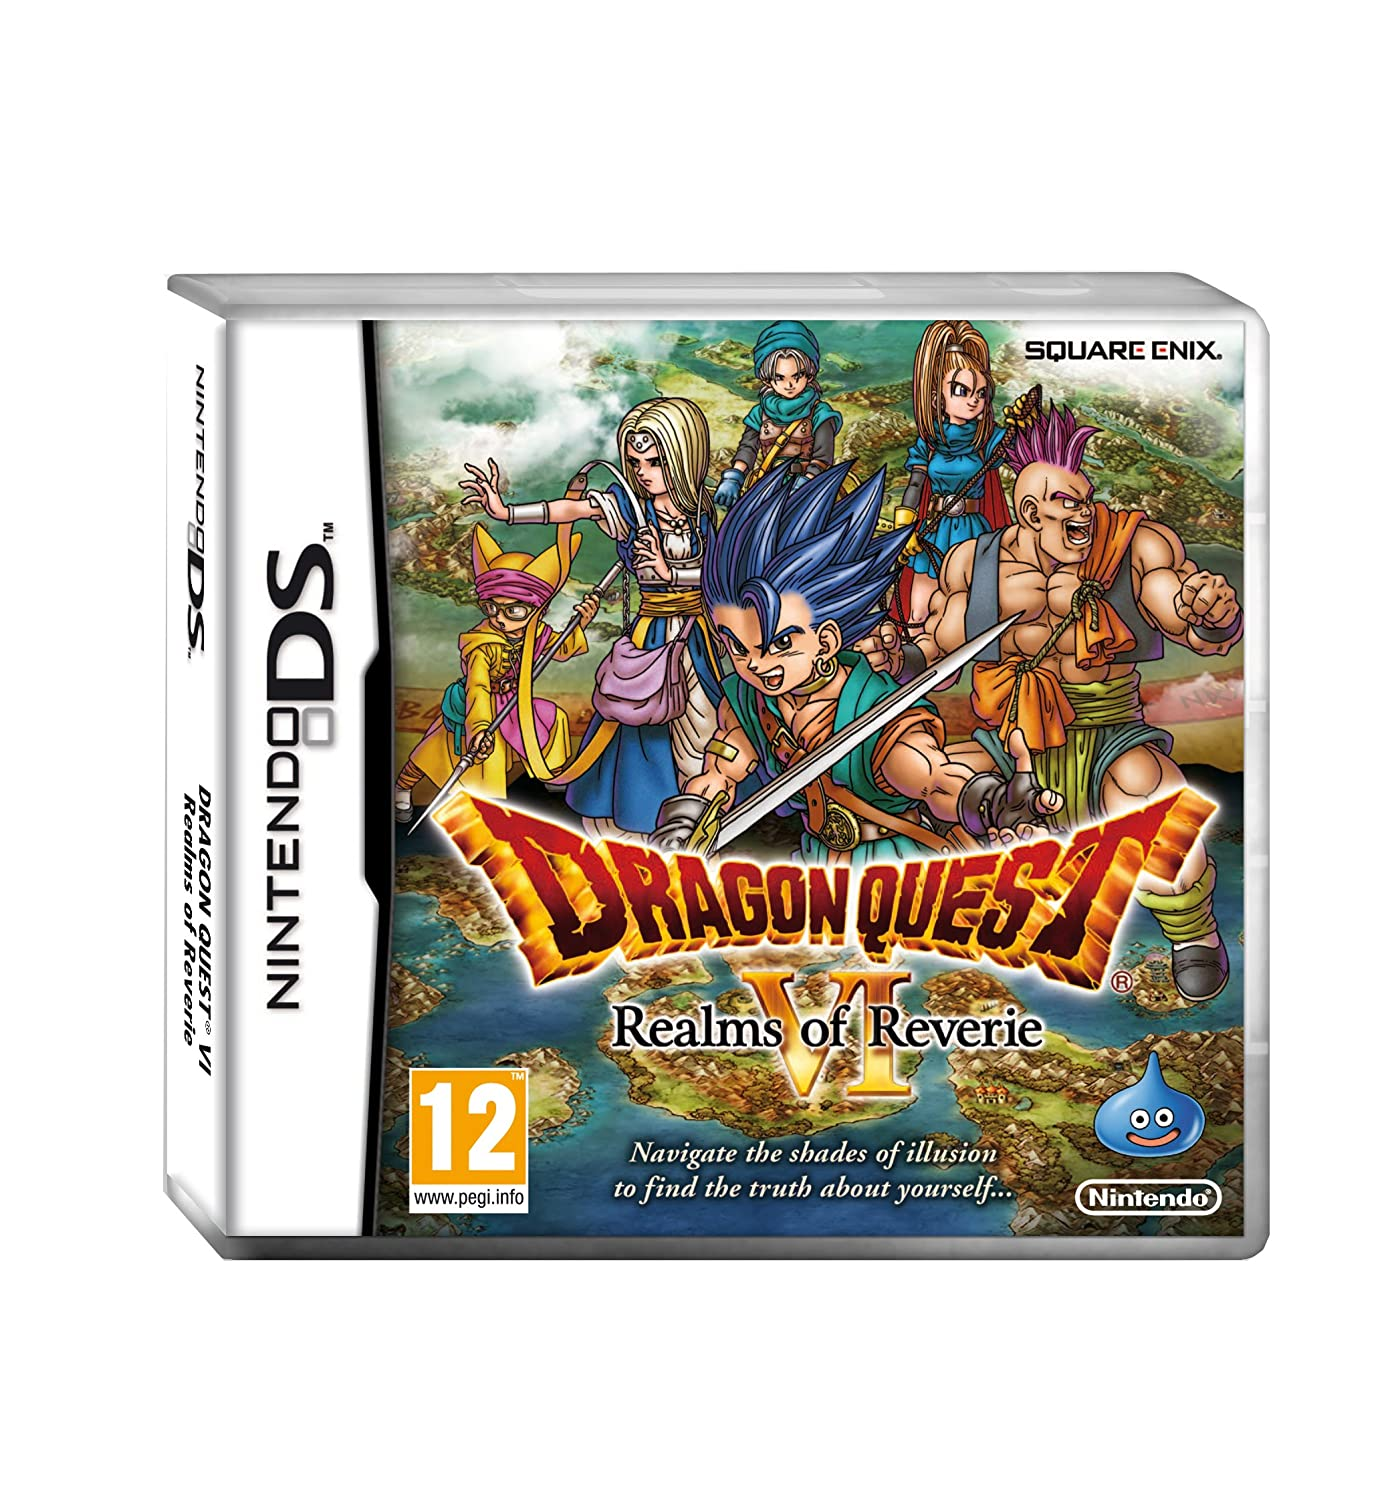 dragon quest v nds rom